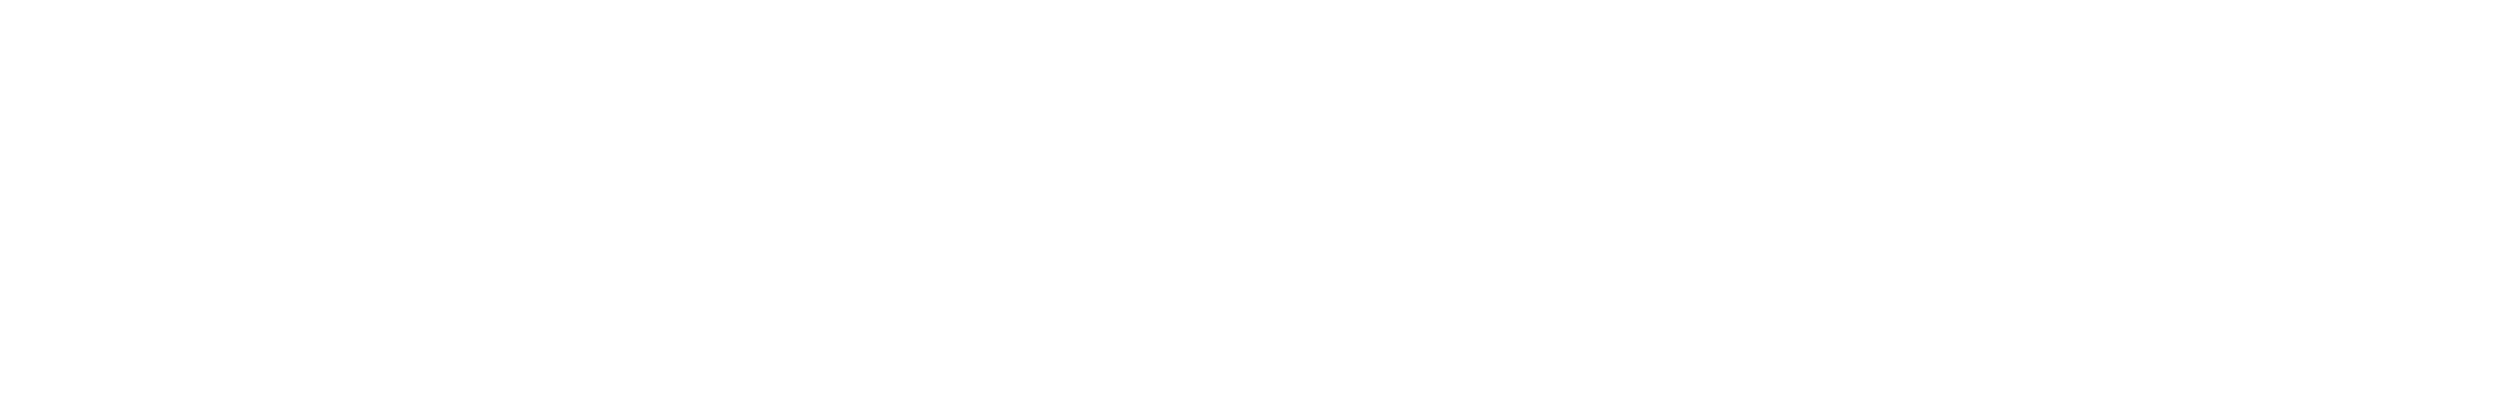 fire-border-with-white-background-mtr_brd_outline_4_inv (1).png